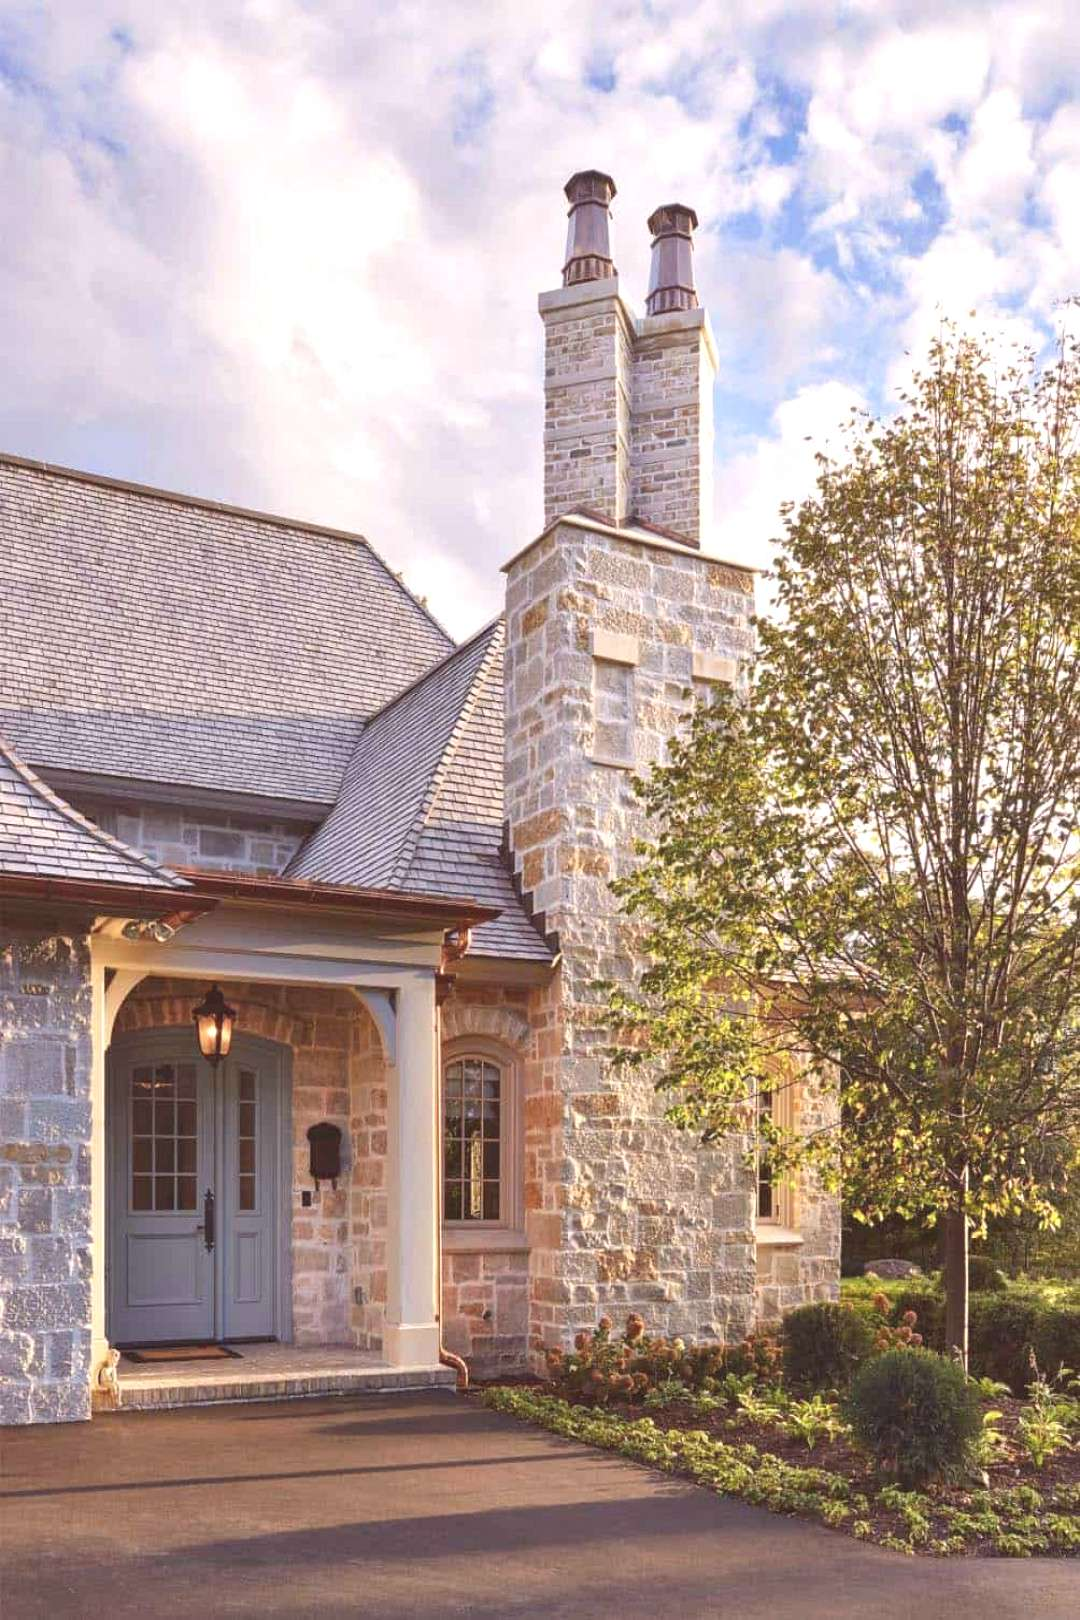 Dream Home Tour: A beautiful French Country estate in Minnesota